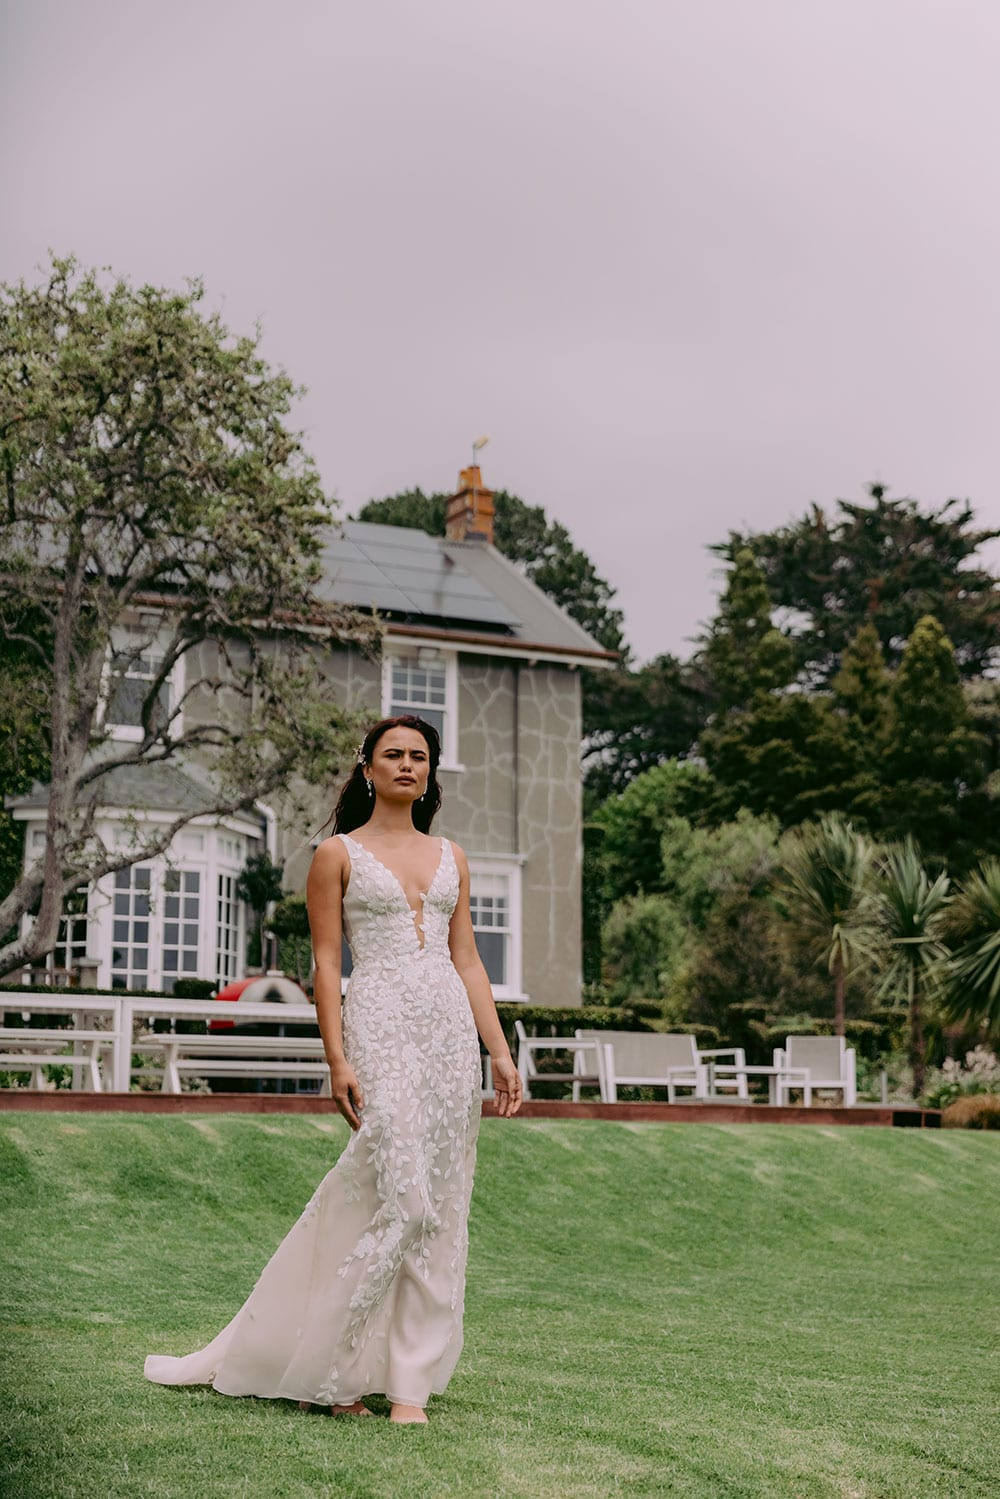 Fleur Wedding gown from Vinka Design - This gorgeous lace wedding dress is available in blush or ivory satin organza. Beautiful embroidered leaf lace, intricately cut and sewn by hand, adorn the bodice & straps and into a soft, flared train. Model wearing gown in Clevedon gardens, near Auckland.